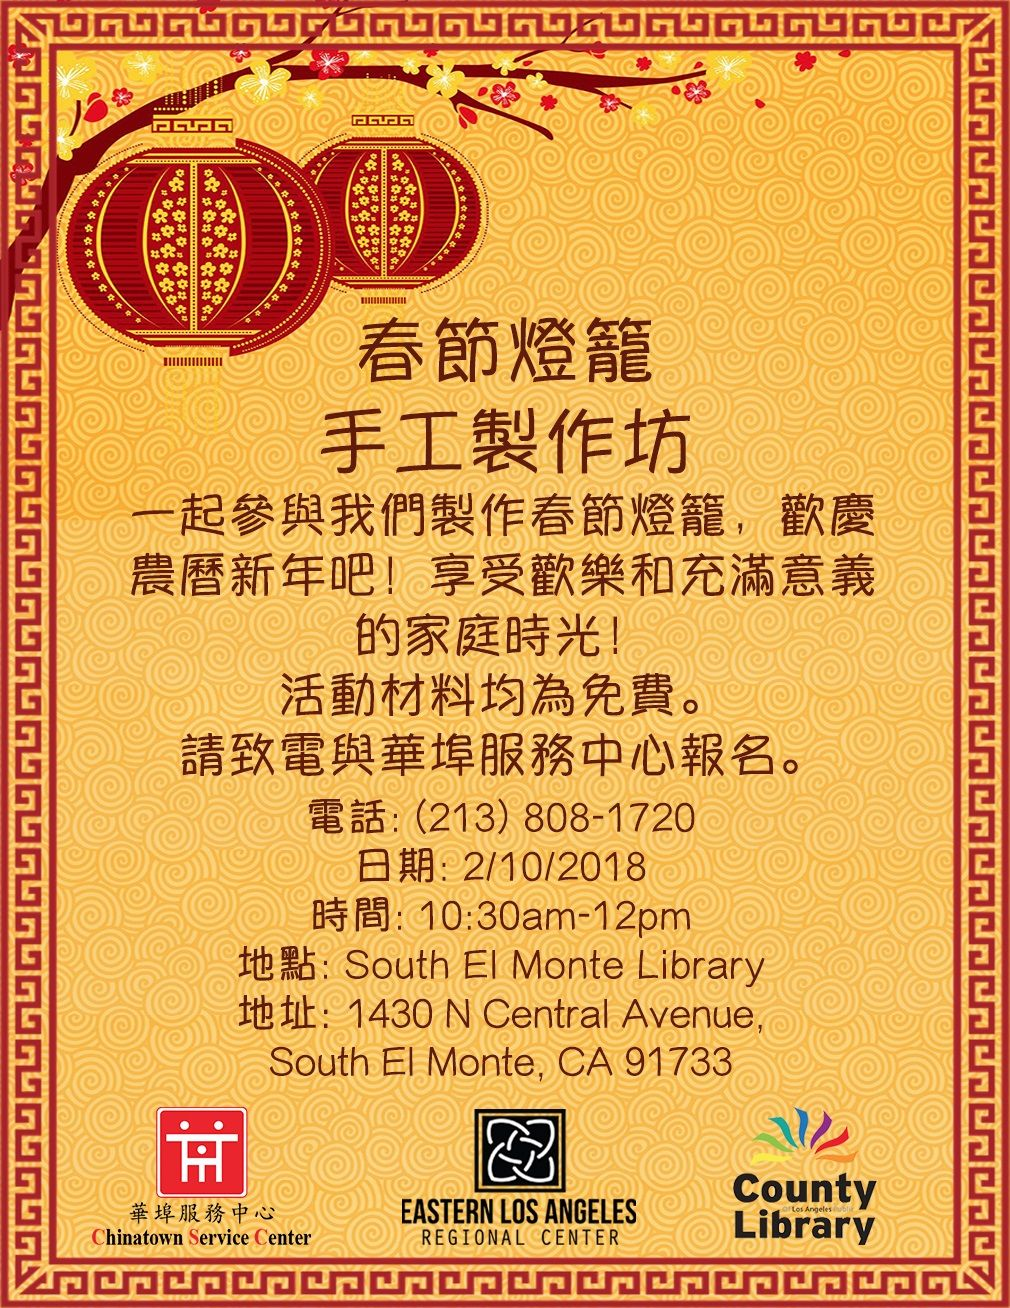 Pin by Chinatown Service Center on Behavioral Health